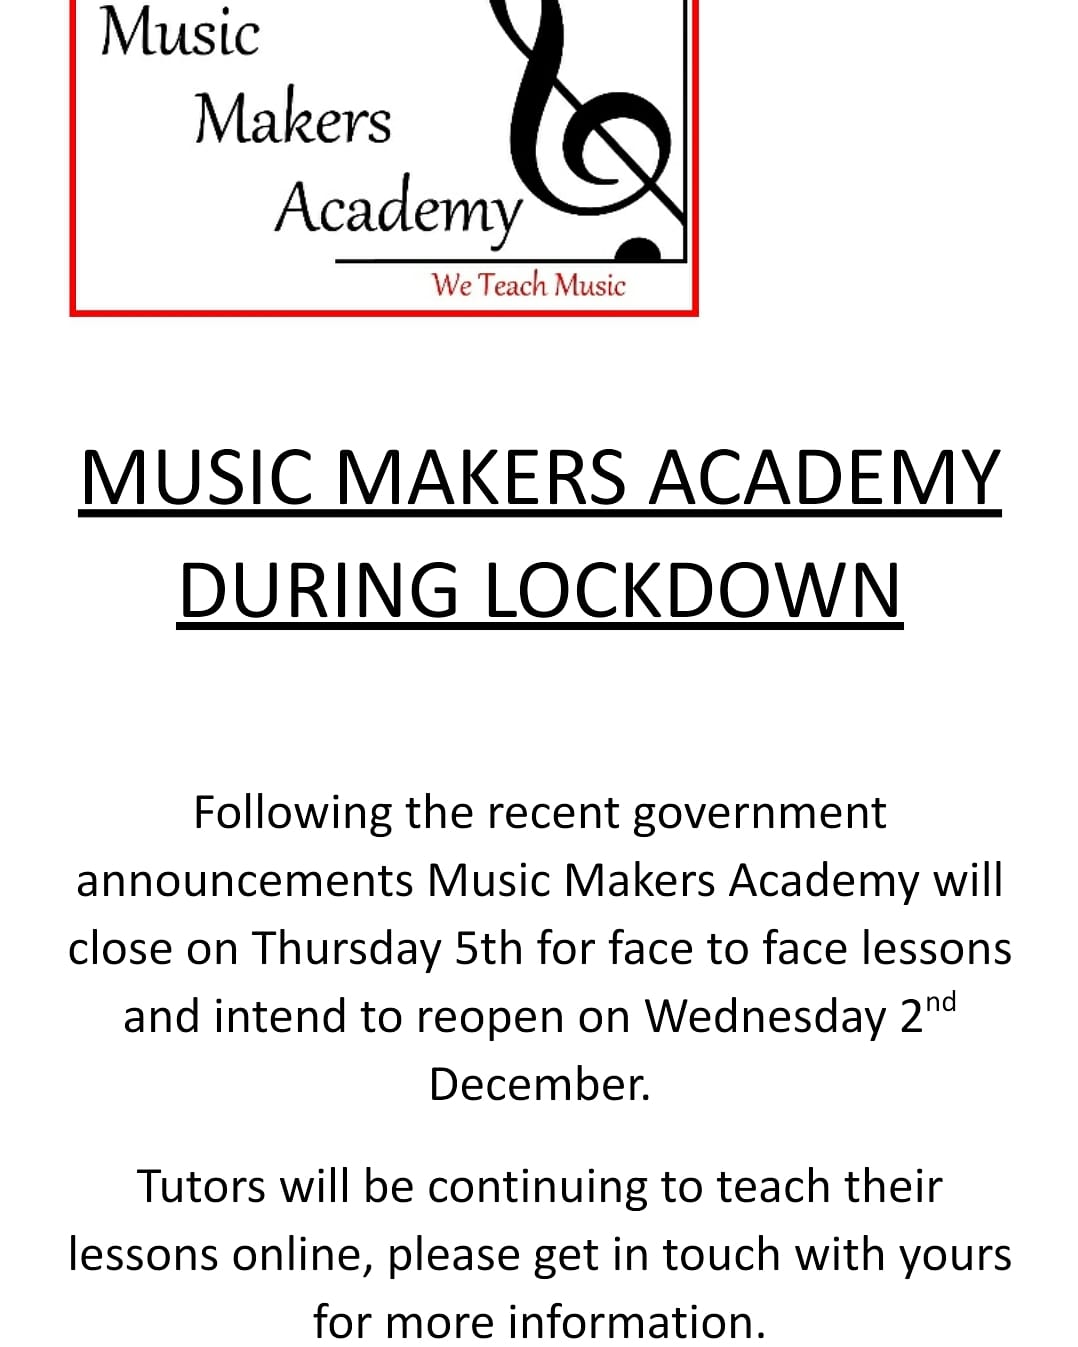 Music Makers Academy, Worle, Weston-super-Mare